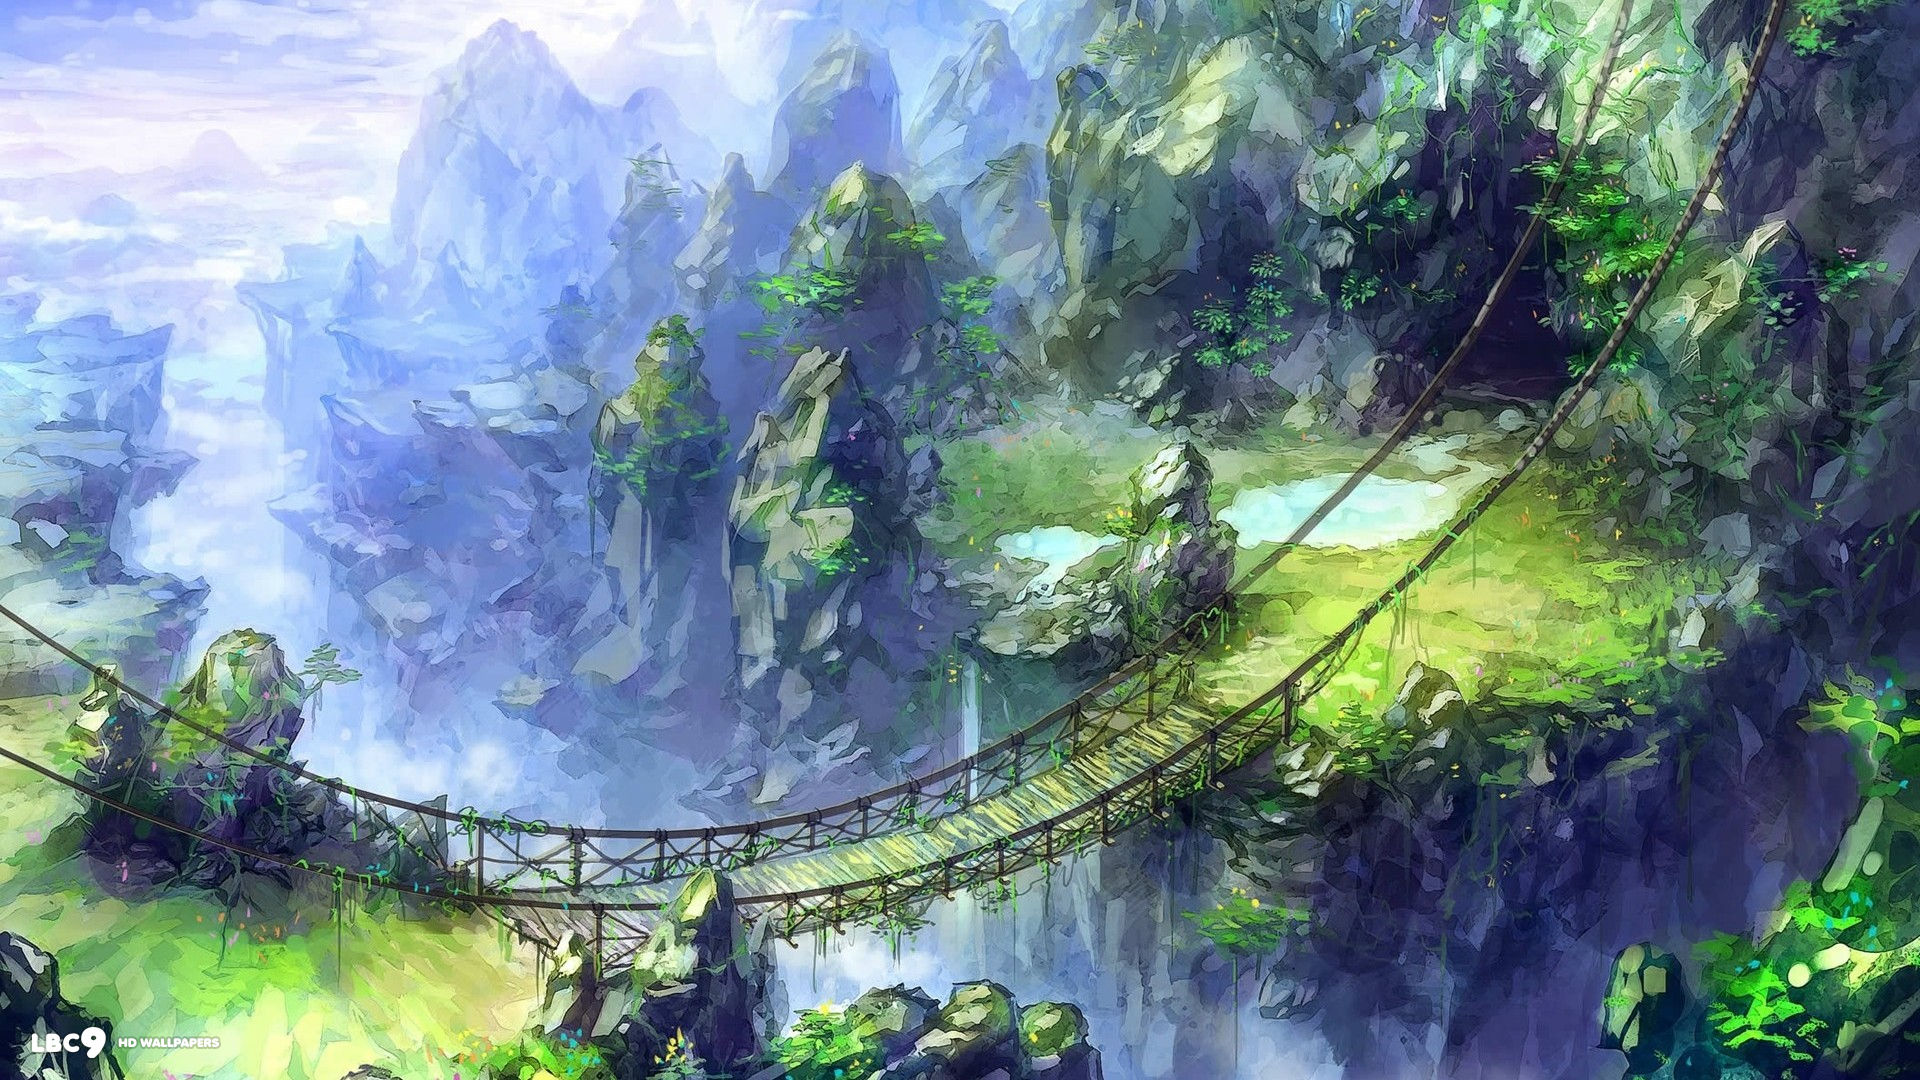 Amazon networking services part two how to train your java - Fantasy wallpaper bridge ...